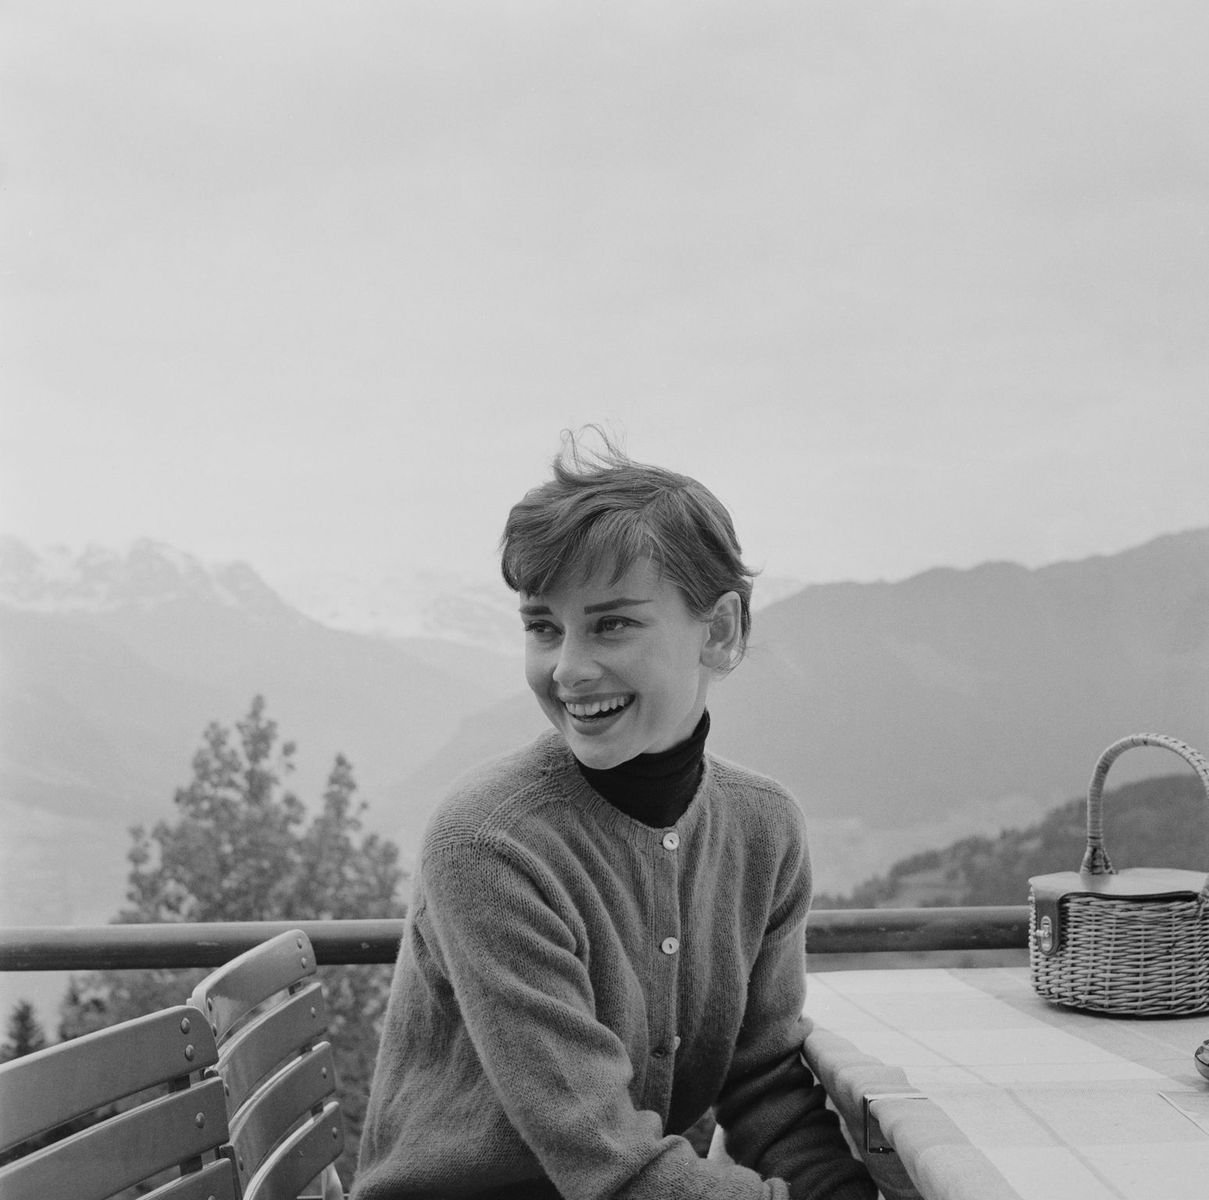 Belgian-born actress Audrey Hepburn (1929 - 1993) on the terrace of the Restaurant Hammetschwand at the summit of the Bürgenstock on January 01, 1955 | Photo: Getty Images